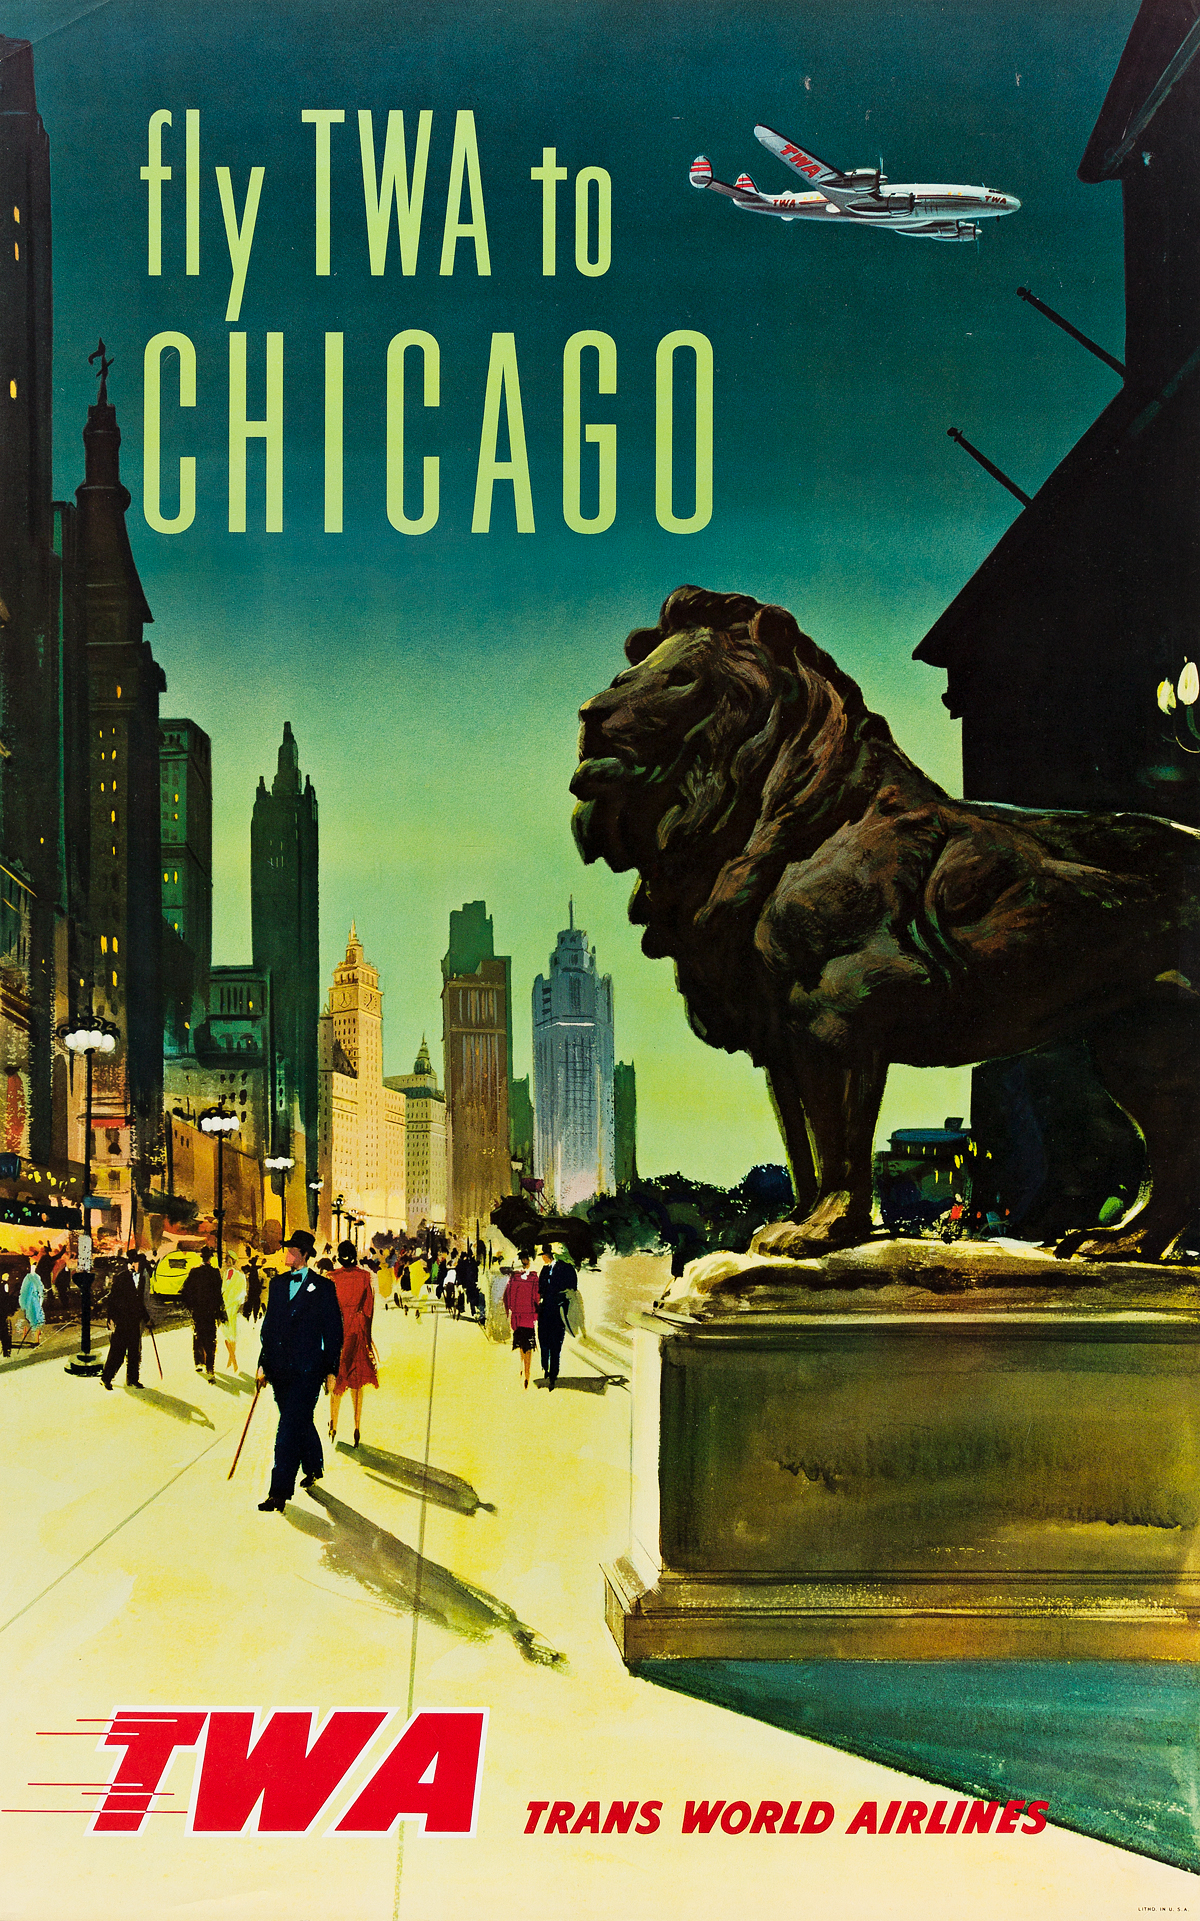 DESIGNER UNKNOWN. FLY TWA TO CHICAGO. 1957. 40x25 inches, 101x63 cm.